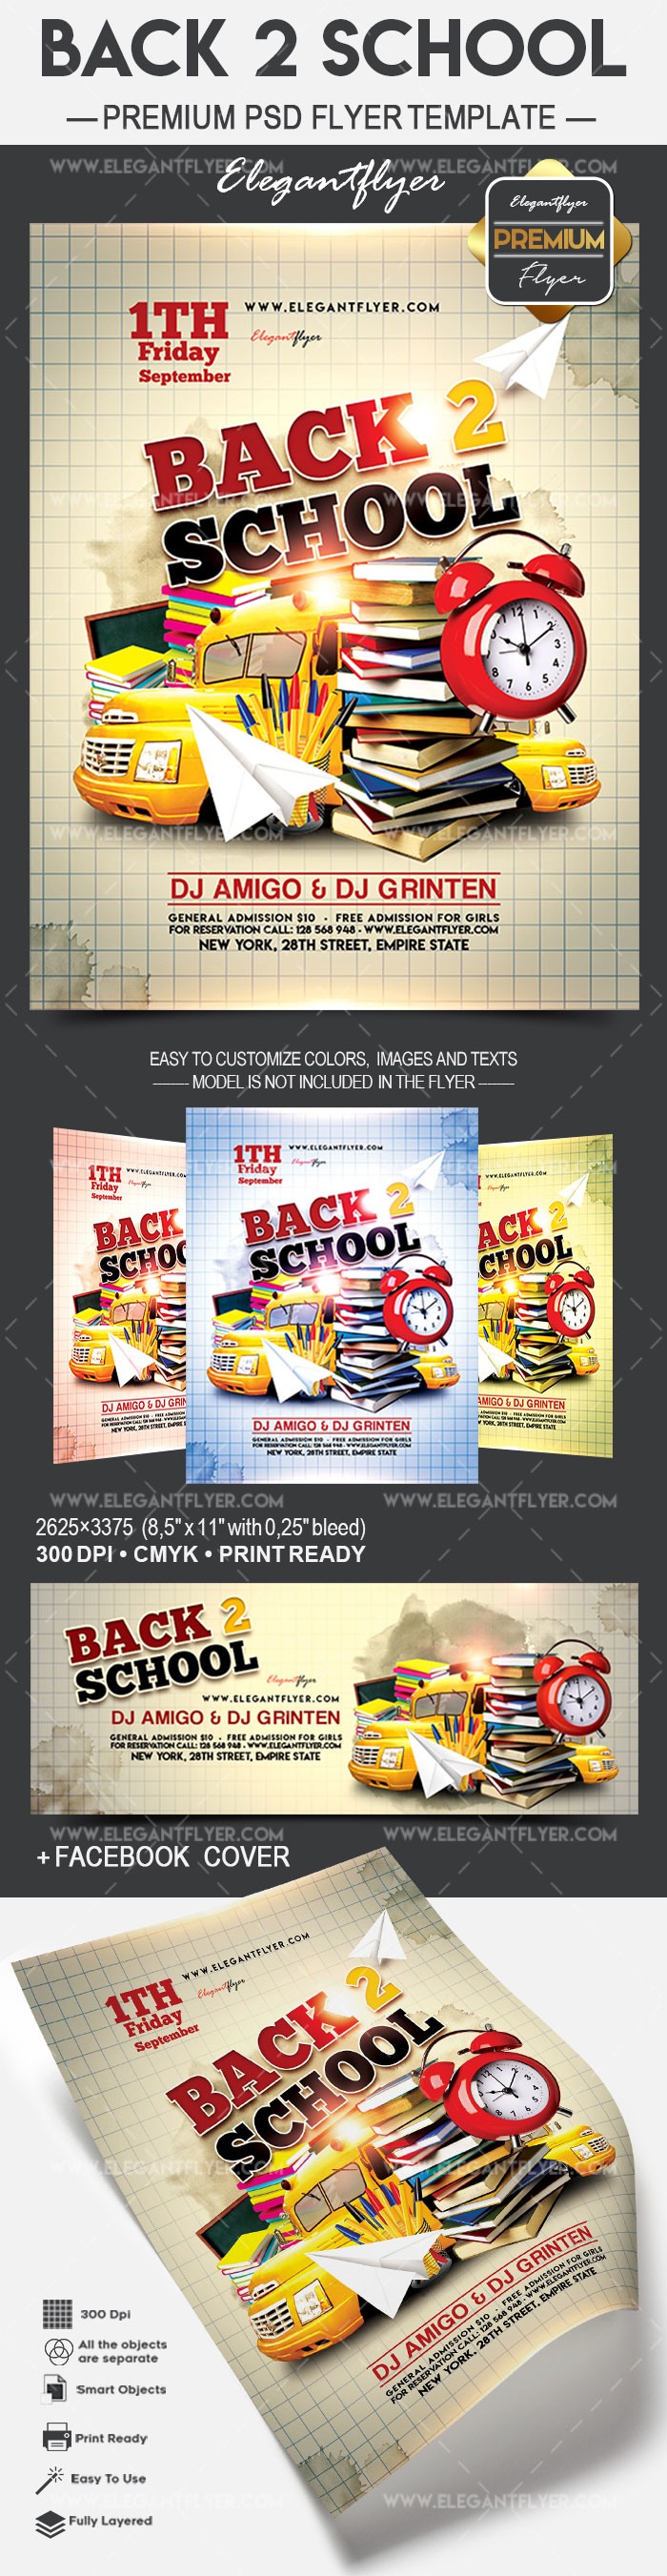 Flyer For Back To School By Elegantflyer